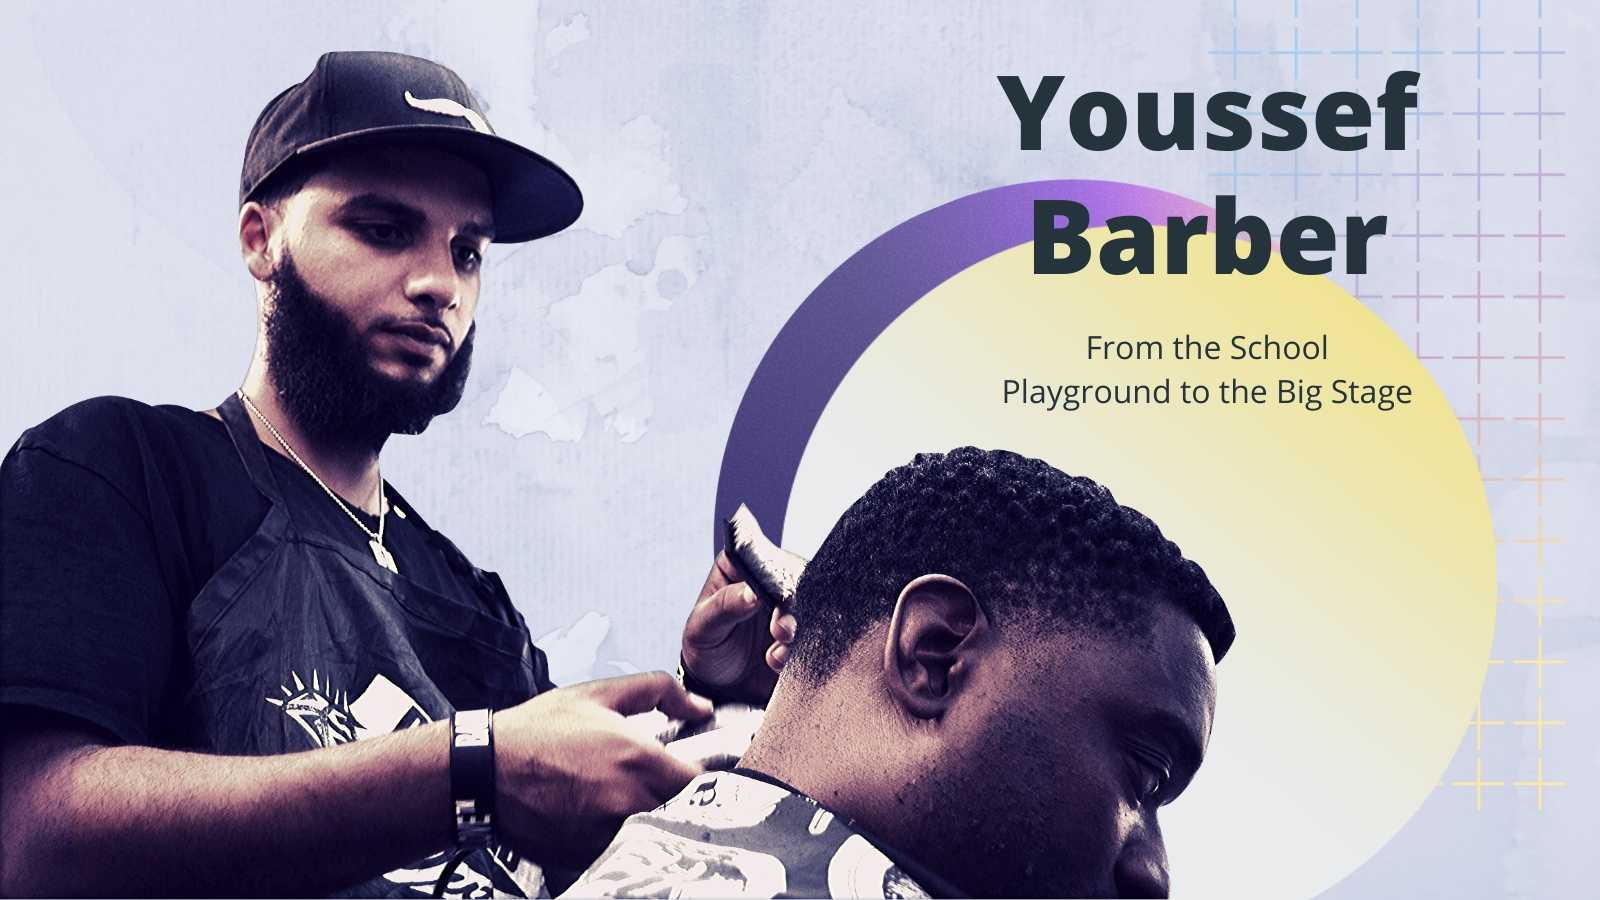 Youssef Barber_ From the School Playground to the Big Stage